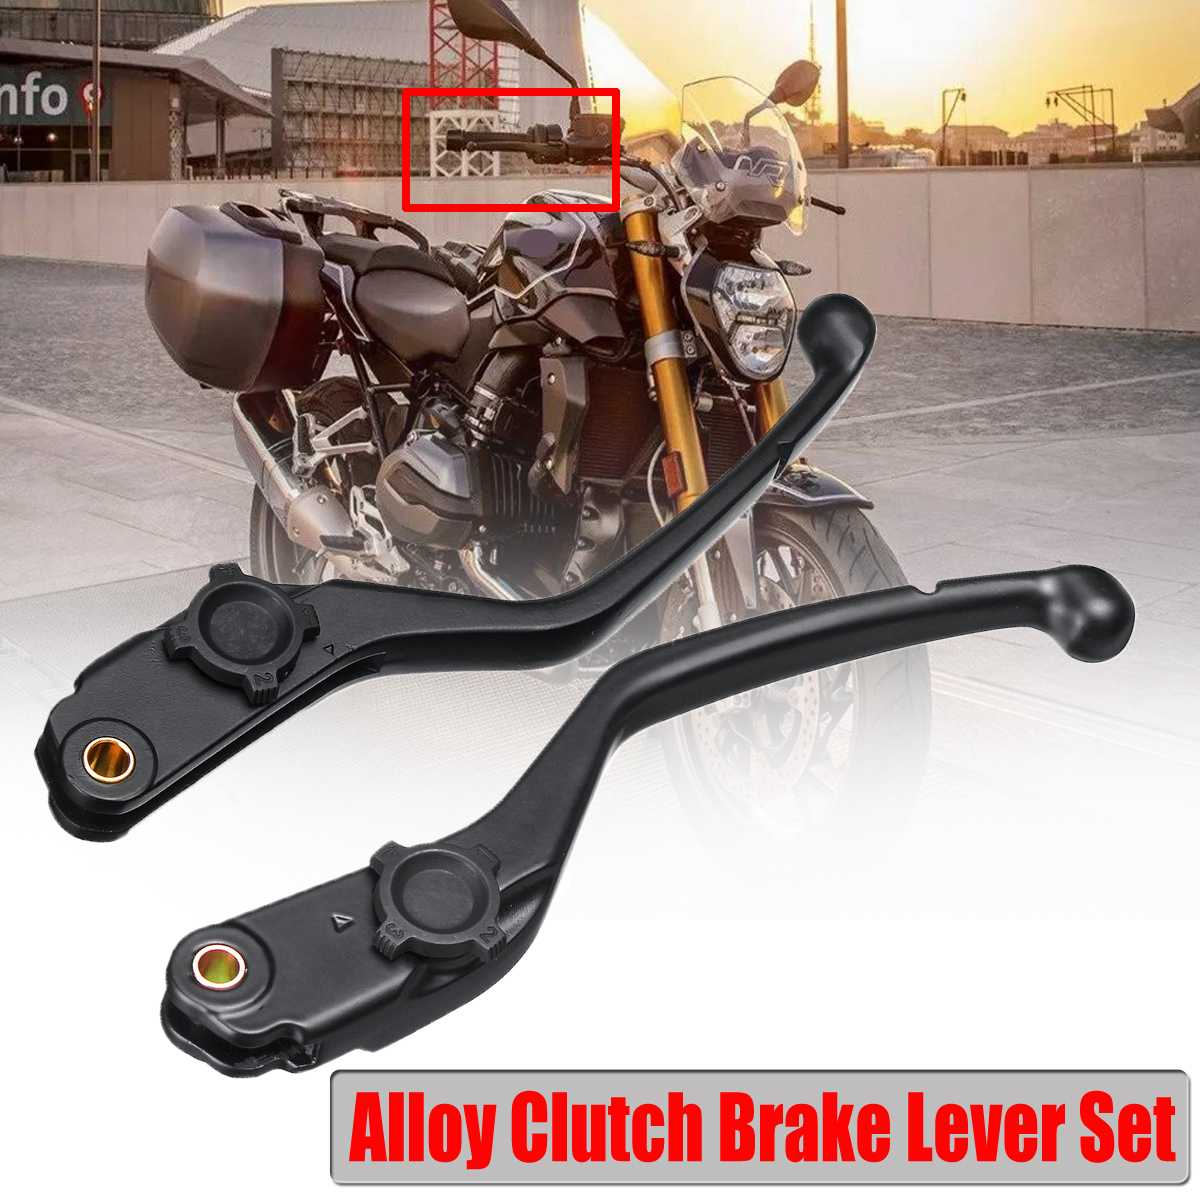 A Pair Alloy Motorcycle Brake Clutch Levers For BMW R1200GS R1200RT R1200R R1200RS Adventure K1600 GT/GTL 13-18 Brake Lever SetA Pair Alloy Motorcycle Brake Clutch Levers For BMW R1200GS R1200RT R1200R R1200RS Adventure K1600 GT/GTL 13-18 Brake Lever Set